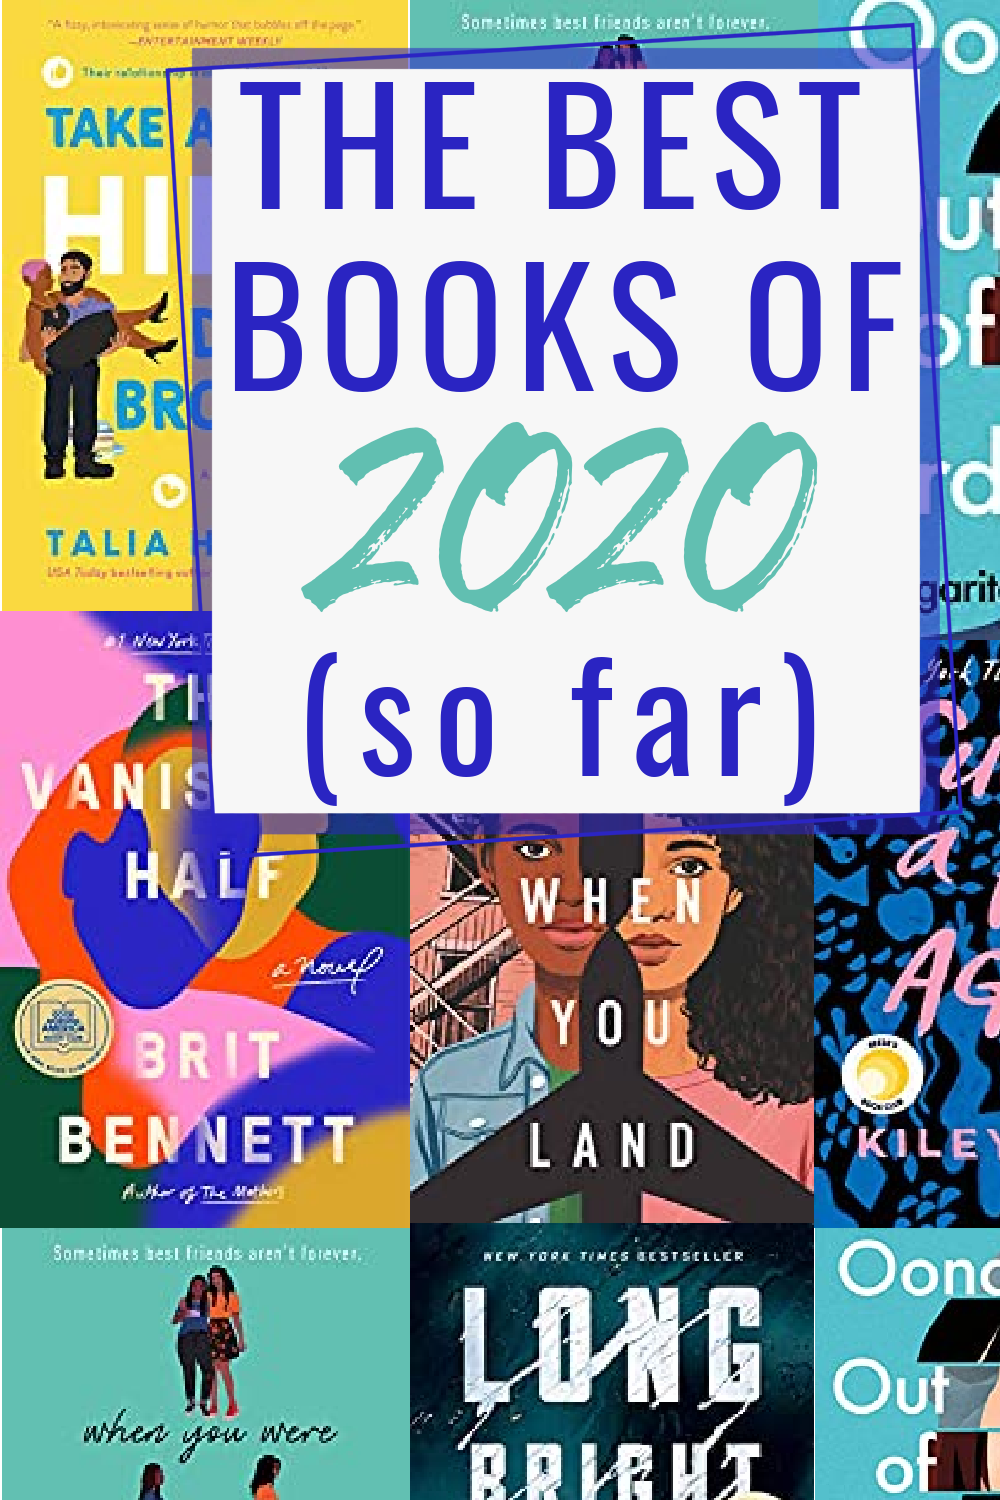 Looking for a good book to read? Check out this book list of the best books of 2020 (so far) according to ME! These have been the standout books and books I wholeheartedly recommend. #bookrecommendation #readinglist